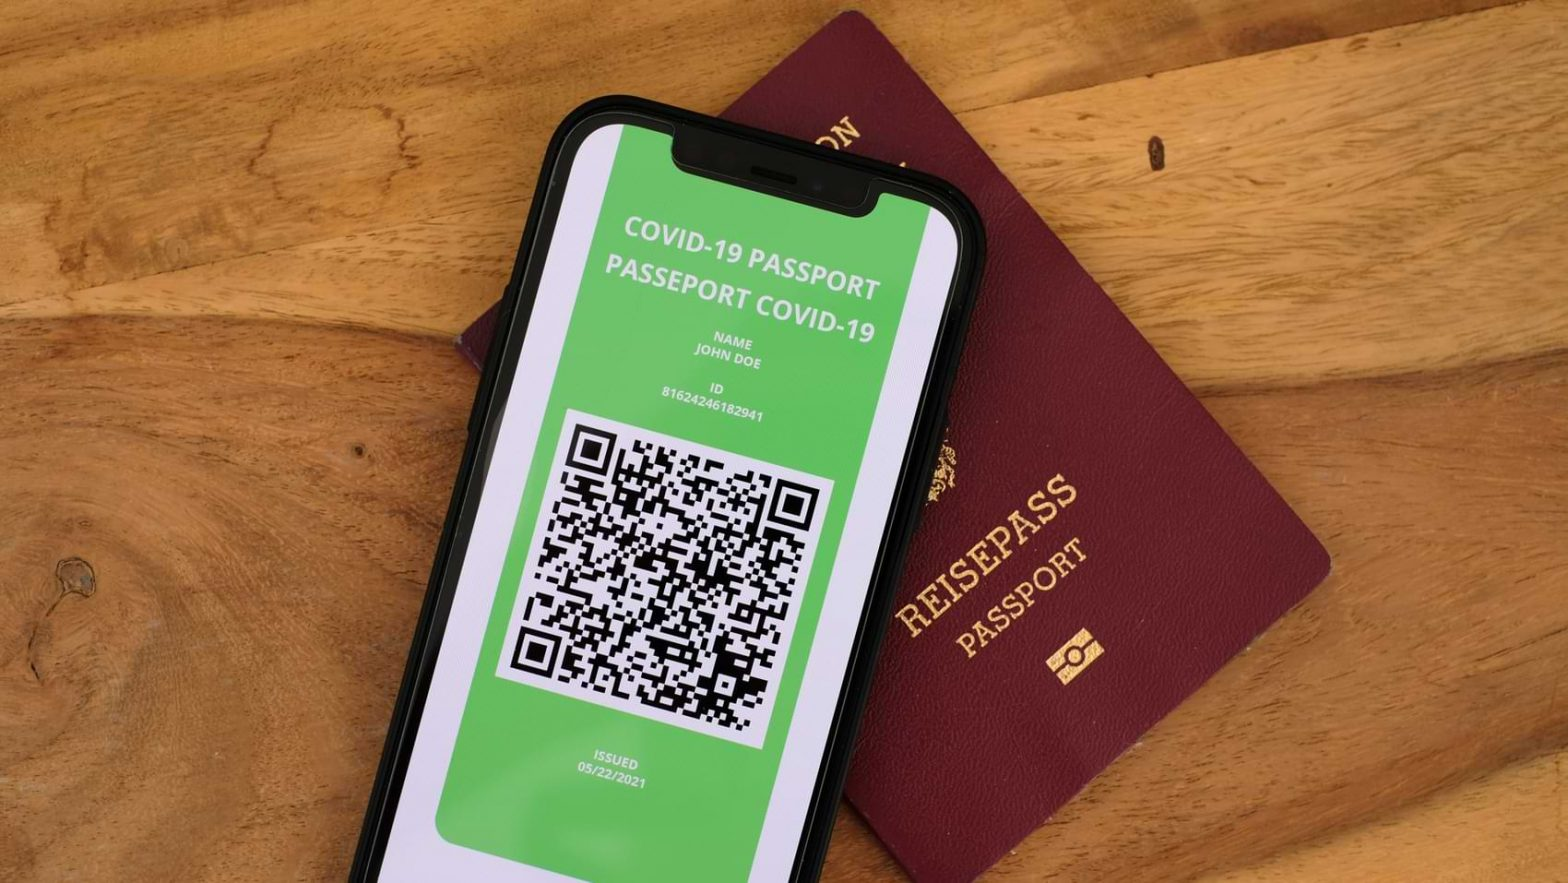 A physical passport next to a COVID-19 passport app on a smartphone.